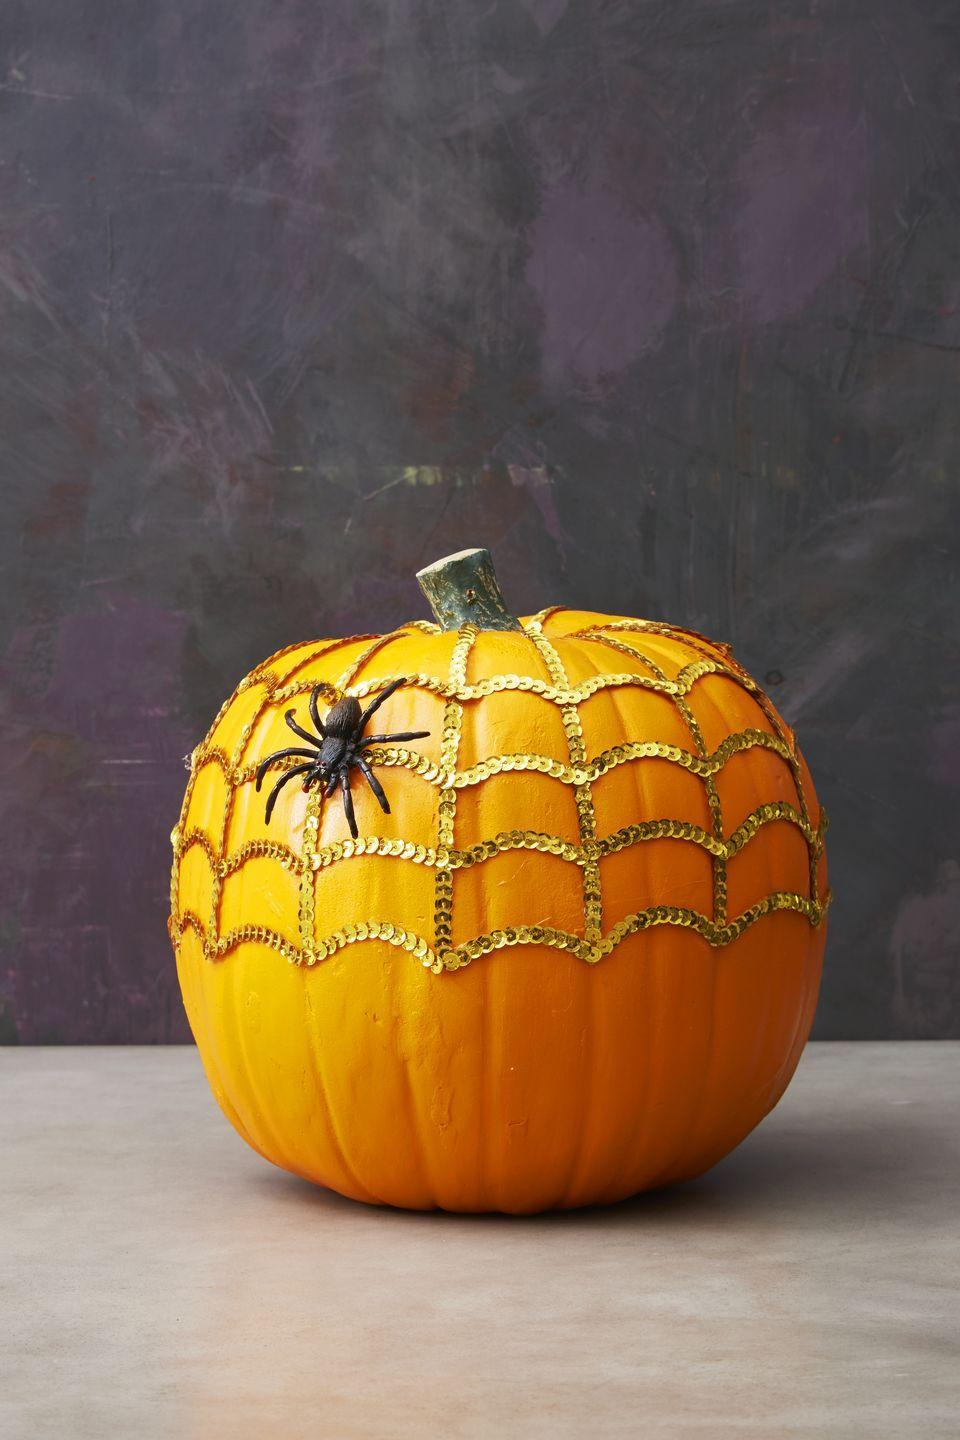 """<p>Using hot glue, place strings of sequins going about halfway down the pumpkin. Next, go horizontal with curved lines to complete the cobweb. A spider is optional but encouraged!</p><p><a class=""""link rapid-noclick-resp"""" href=""""https://www.amazon.com/Expo-International-20-Yard-Starlight-Hologram/dp/B00G02ZTA8/?tag=syn-yahoo-20&ascsubtag=%5Bartid%7C10055.g.1714%5Bsrc%7Cyahoo-us"""" rel=""""nofollow noopener"""" target=""""_blank"""" data-ylk=""""slk:SHOP SEQUINS"""">SHOP SEQUINS</a><br></p>"""